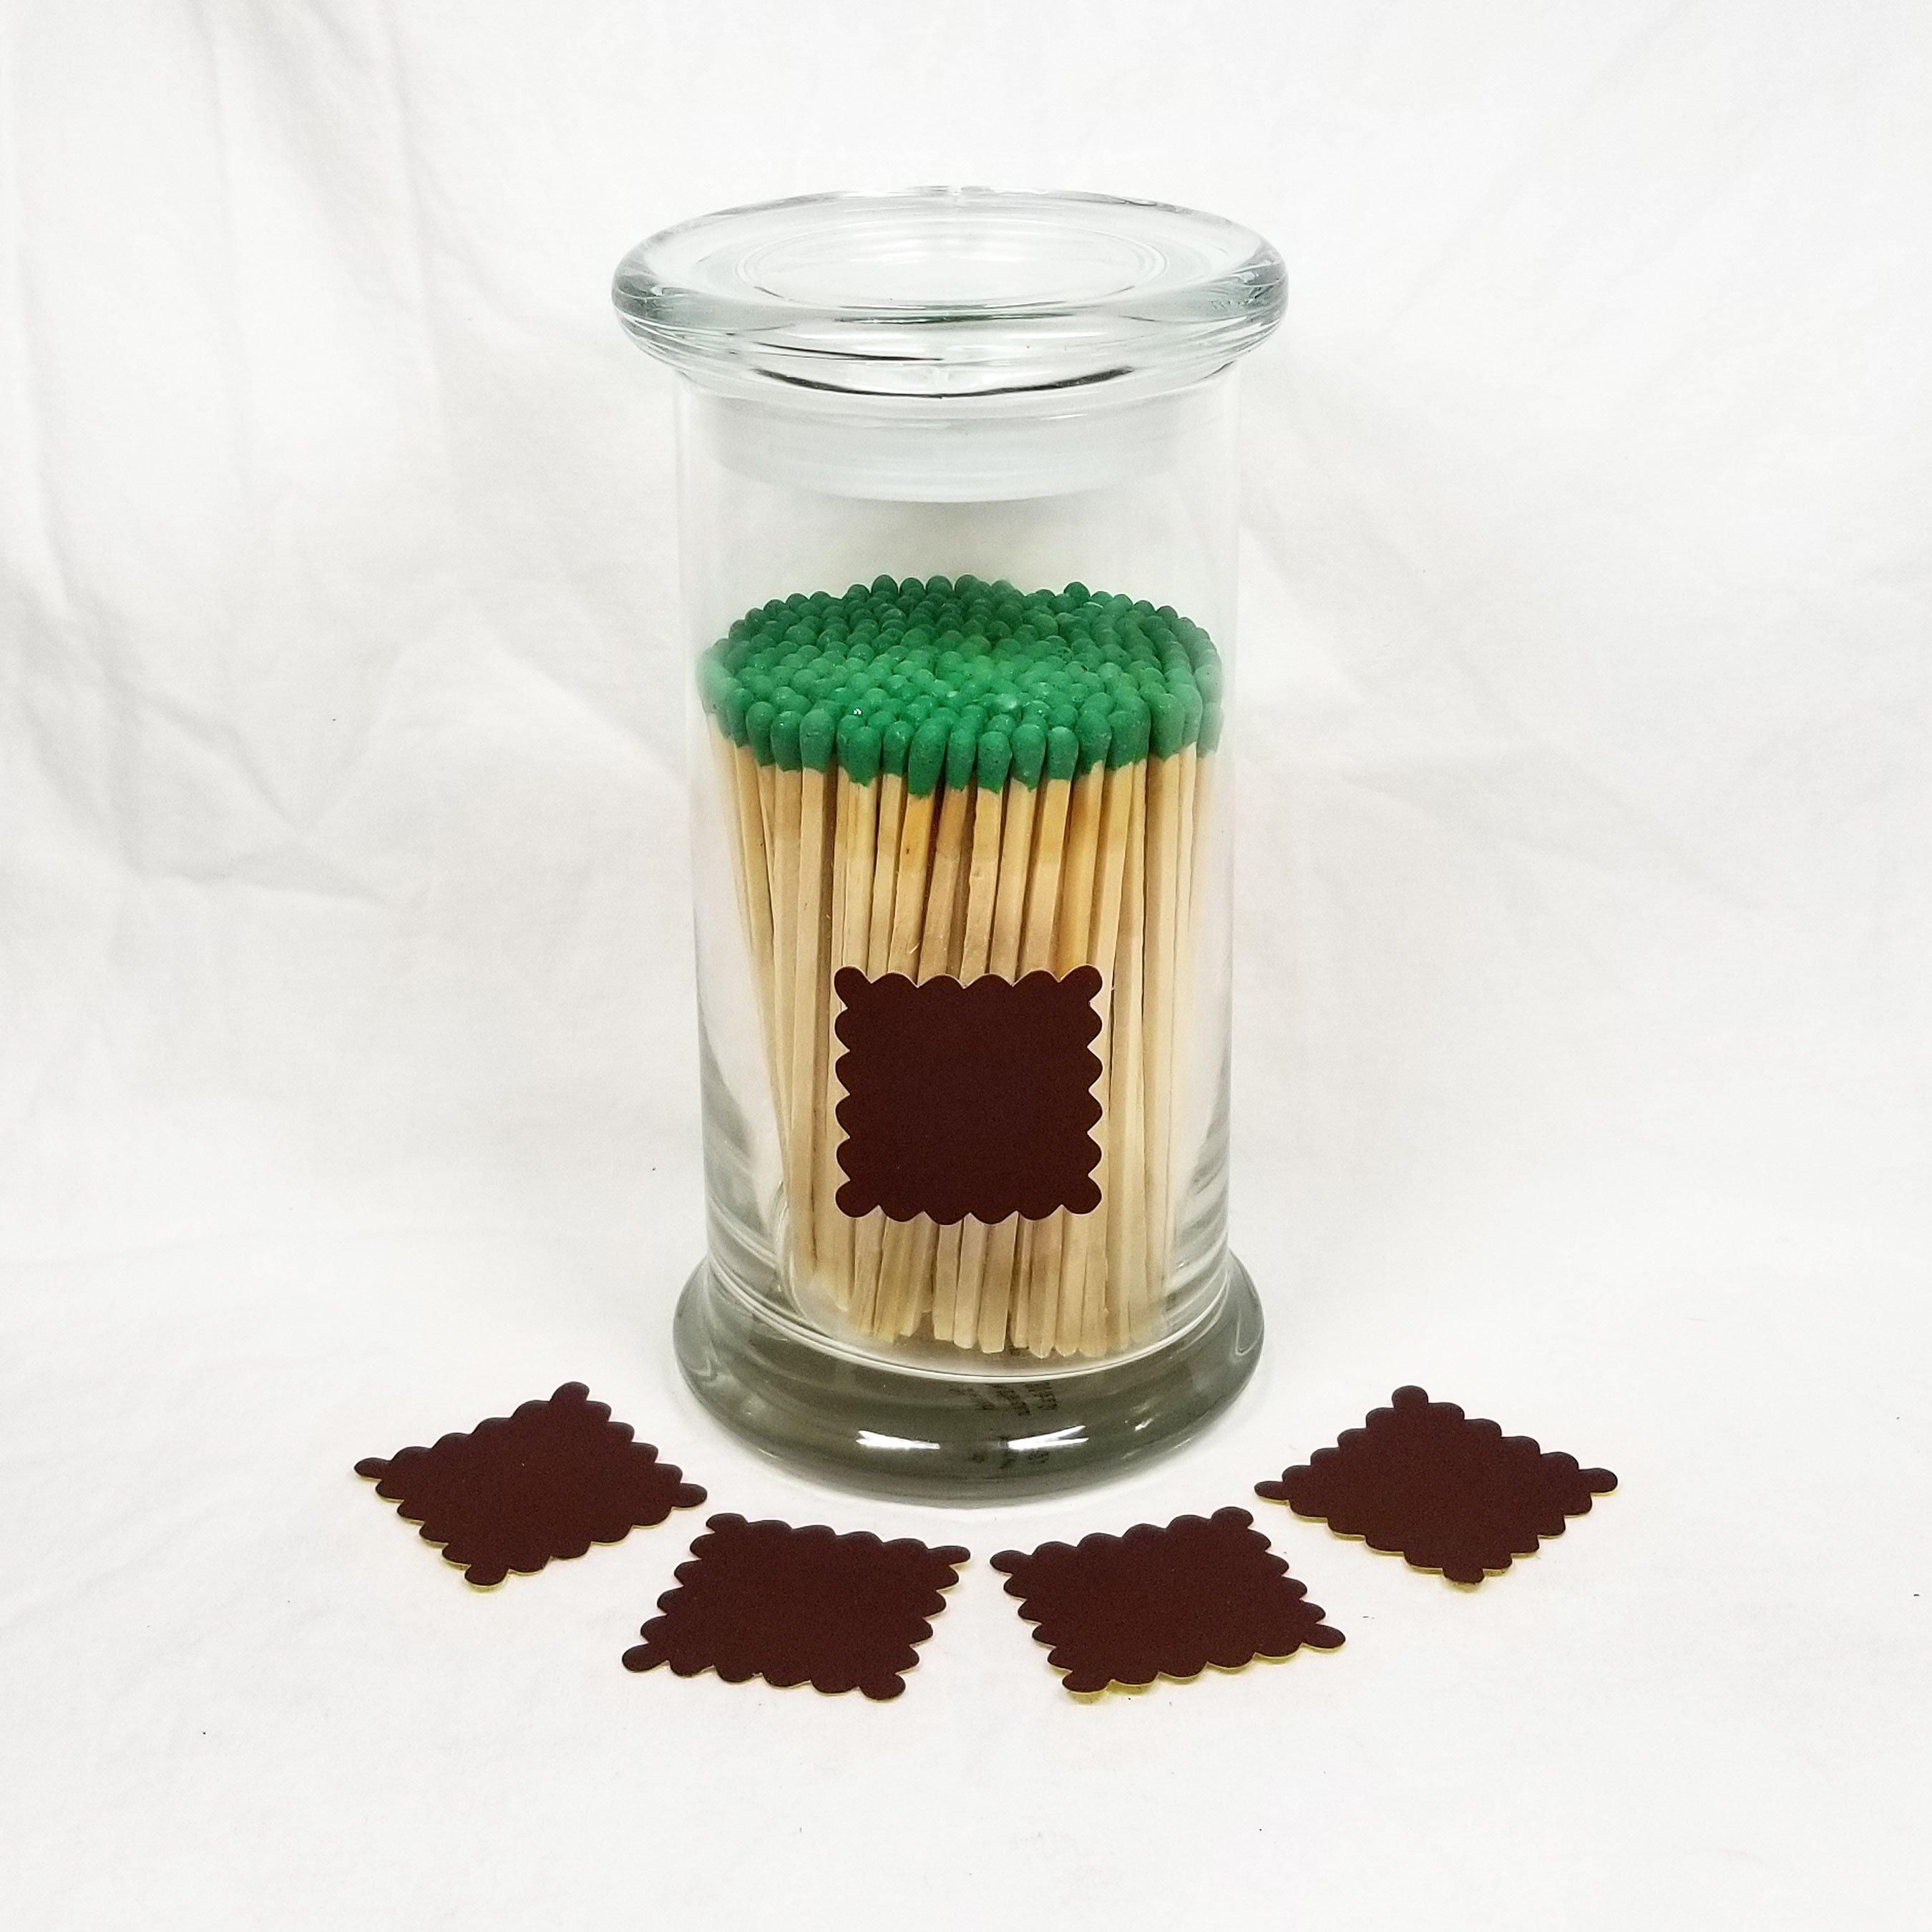 "Large Glass Status Jar with 4"" Matchsticks with Green Tips. Scalloped Square match striker in brown."